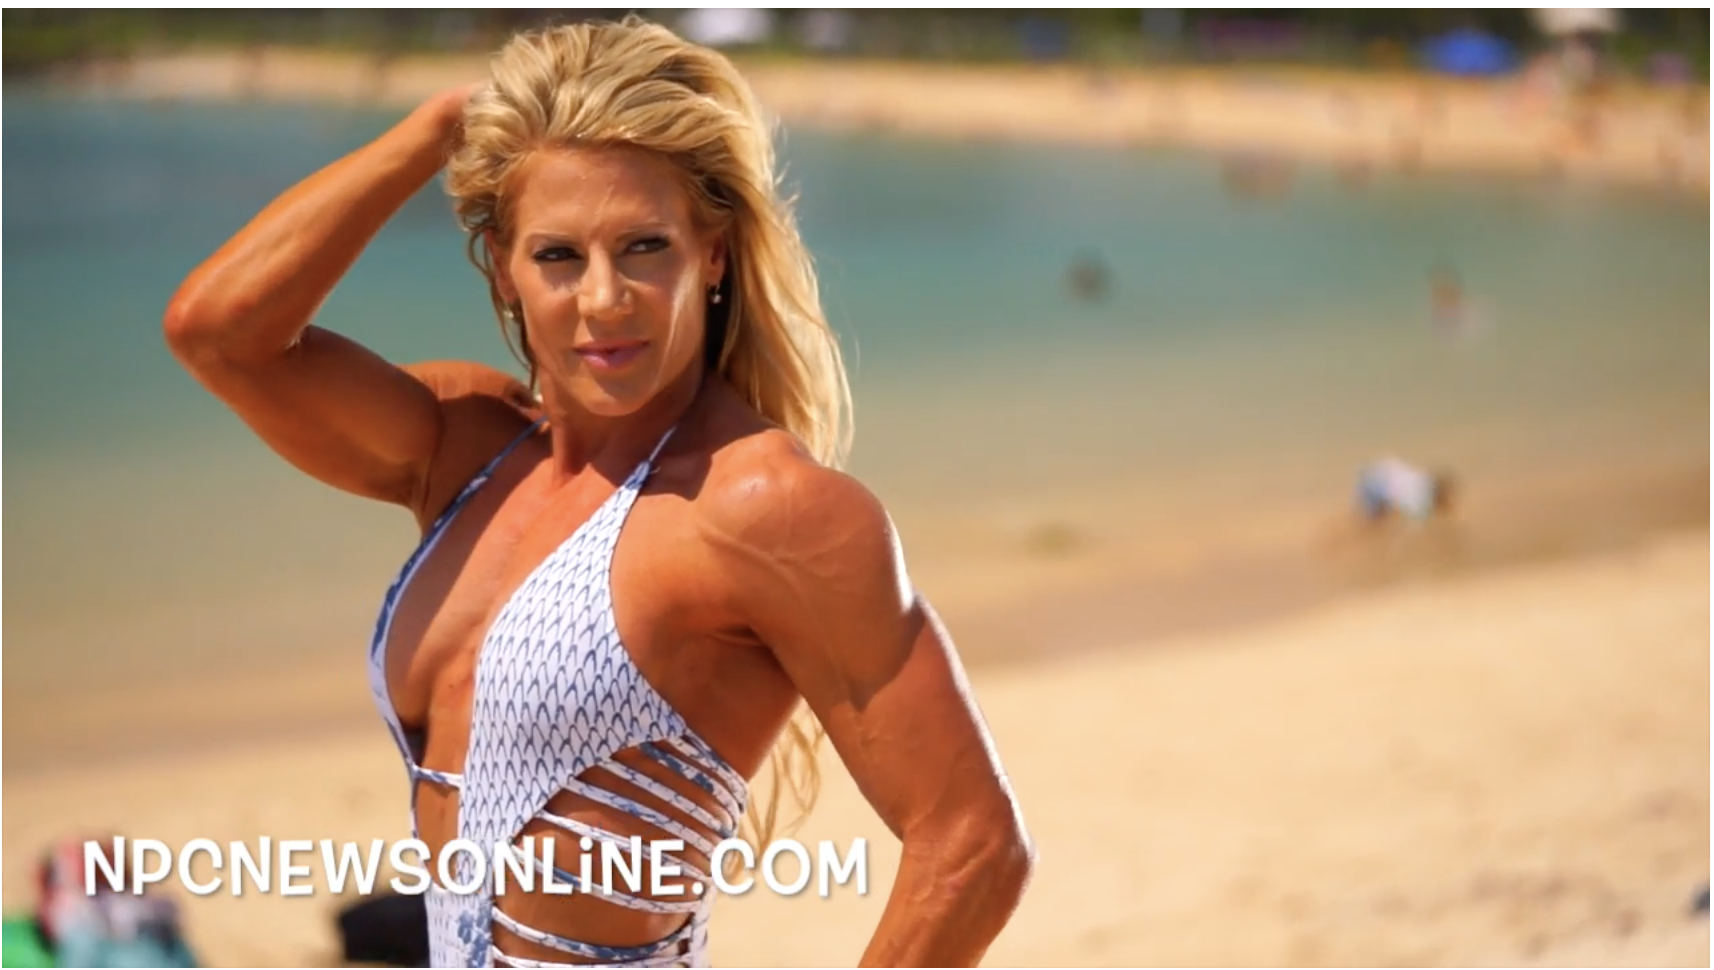 2017 J.M. Manion Hawaii Shoot: IFBB Fitness Pro Whitney Jones Behind The Scenes Video